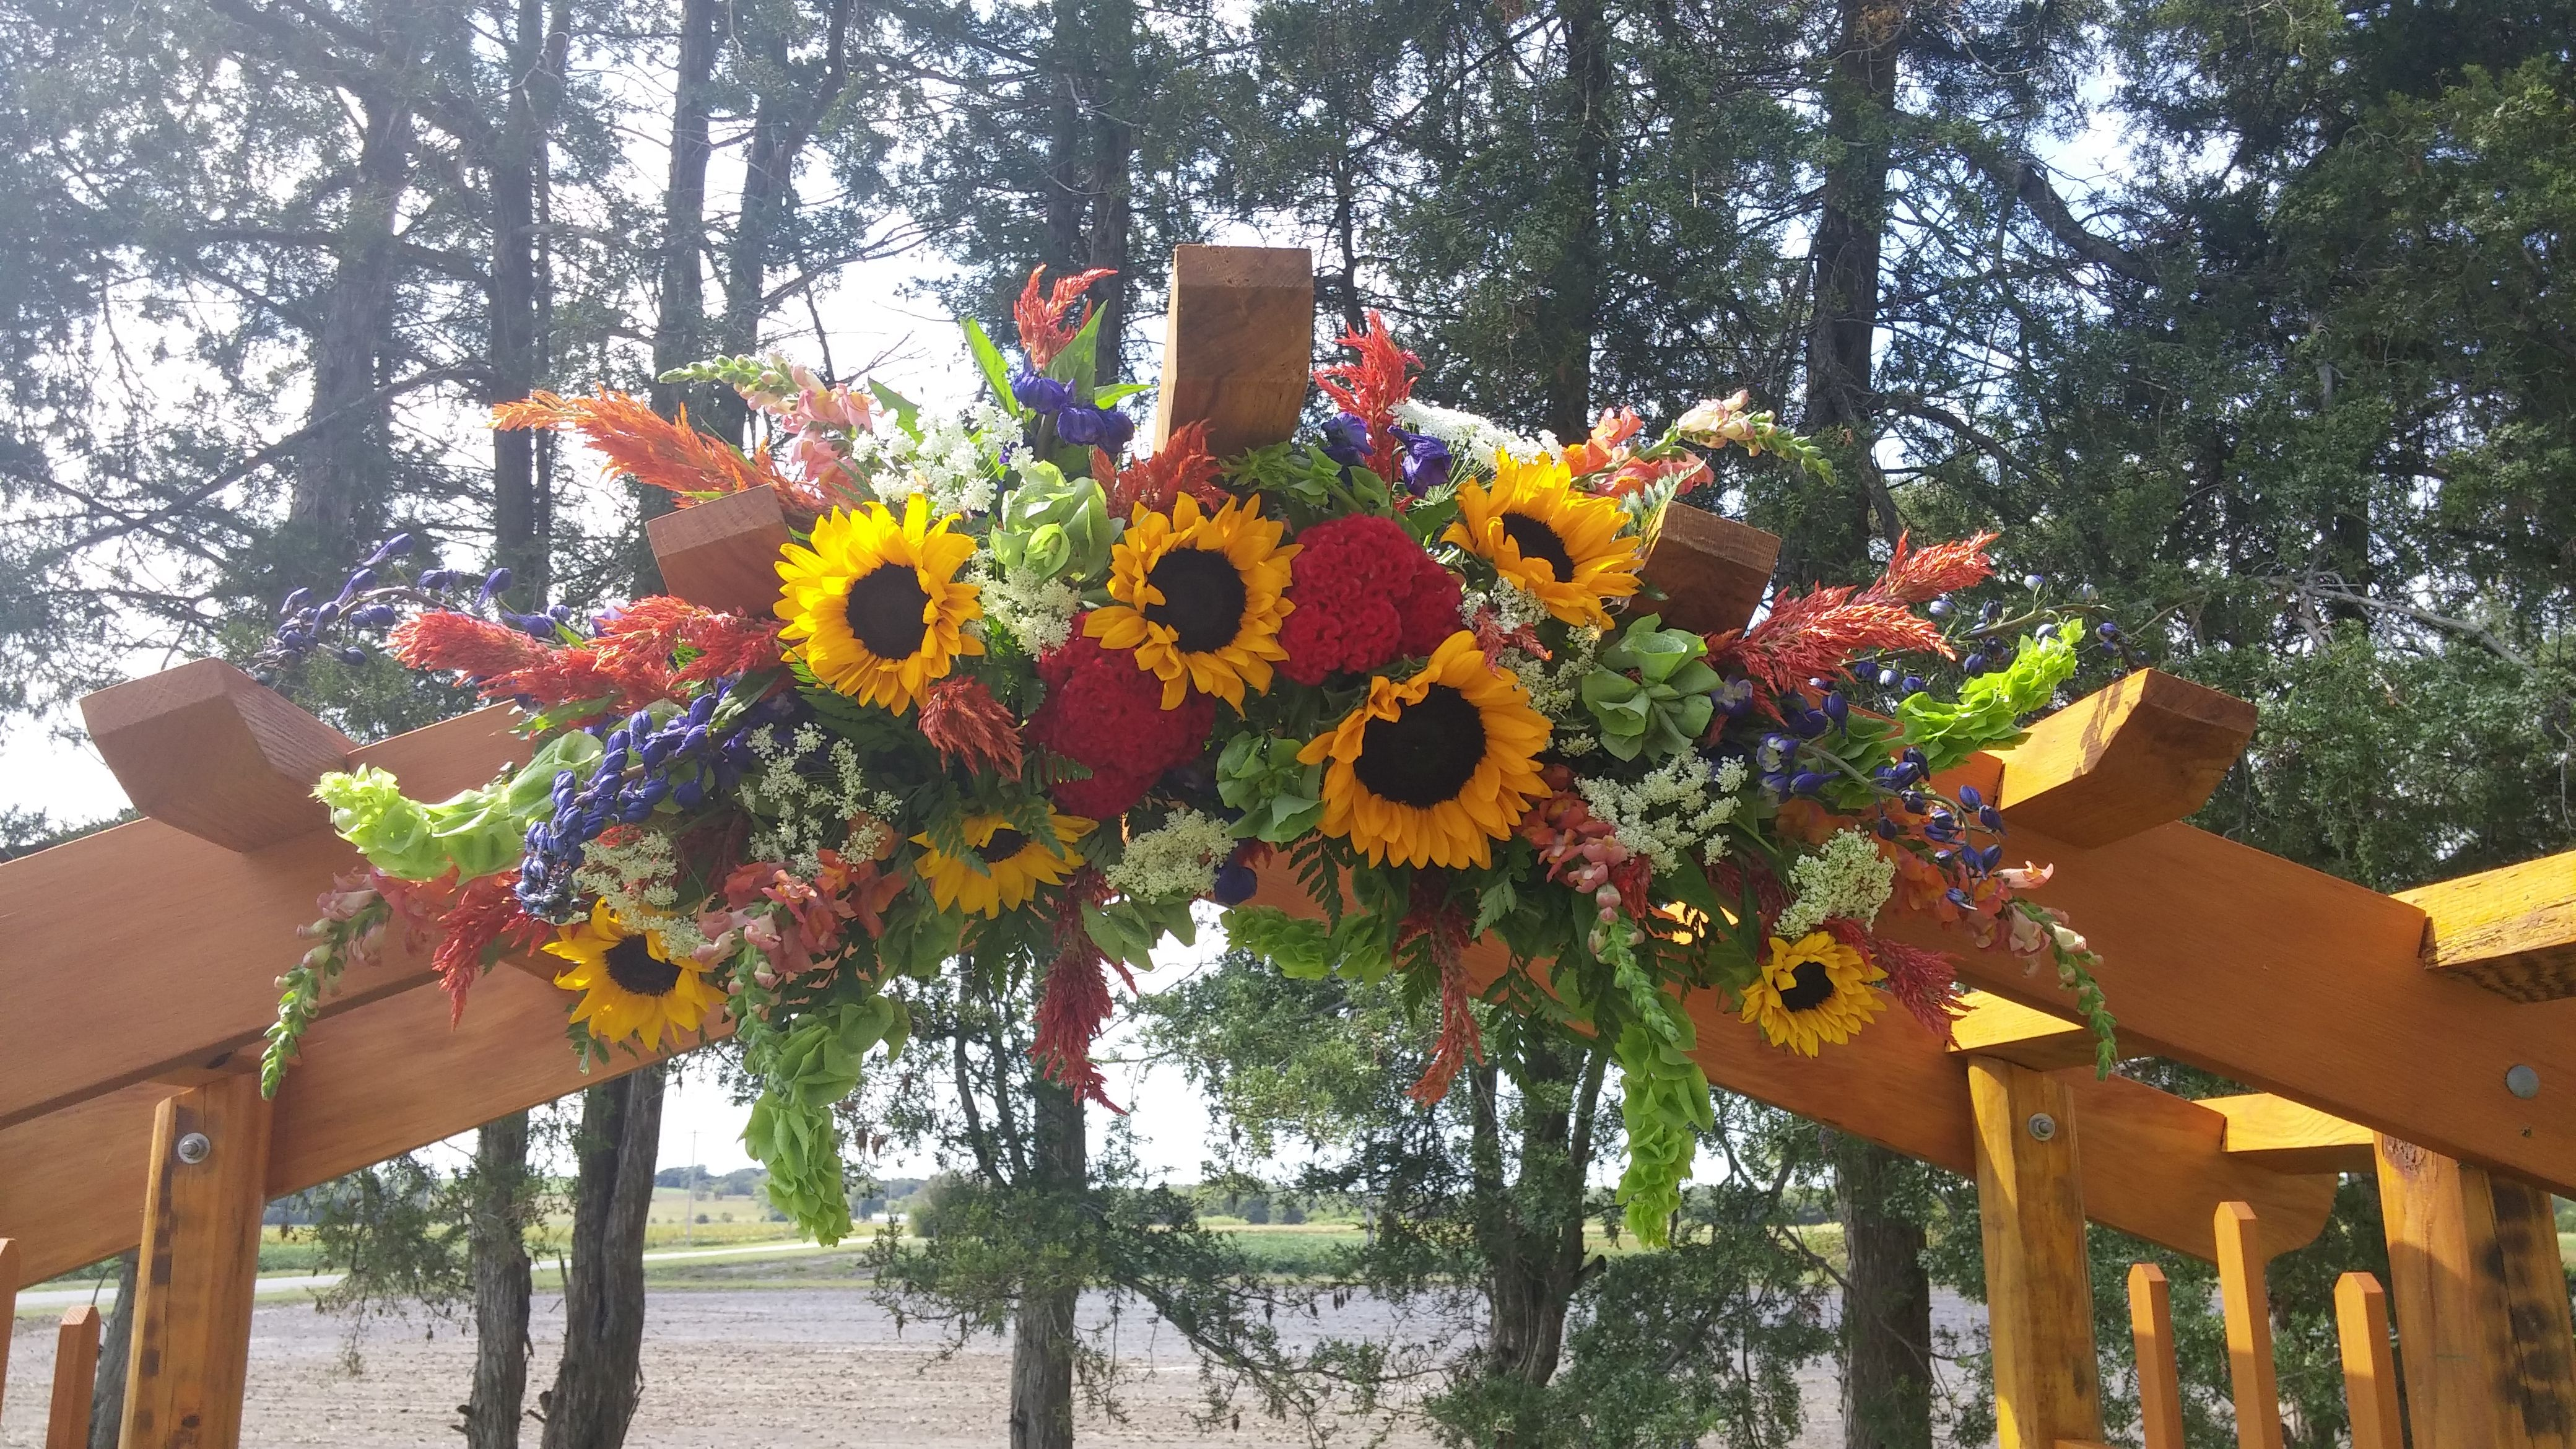 Arch flowers by Kistner's Flowers Sunflowers, celosia